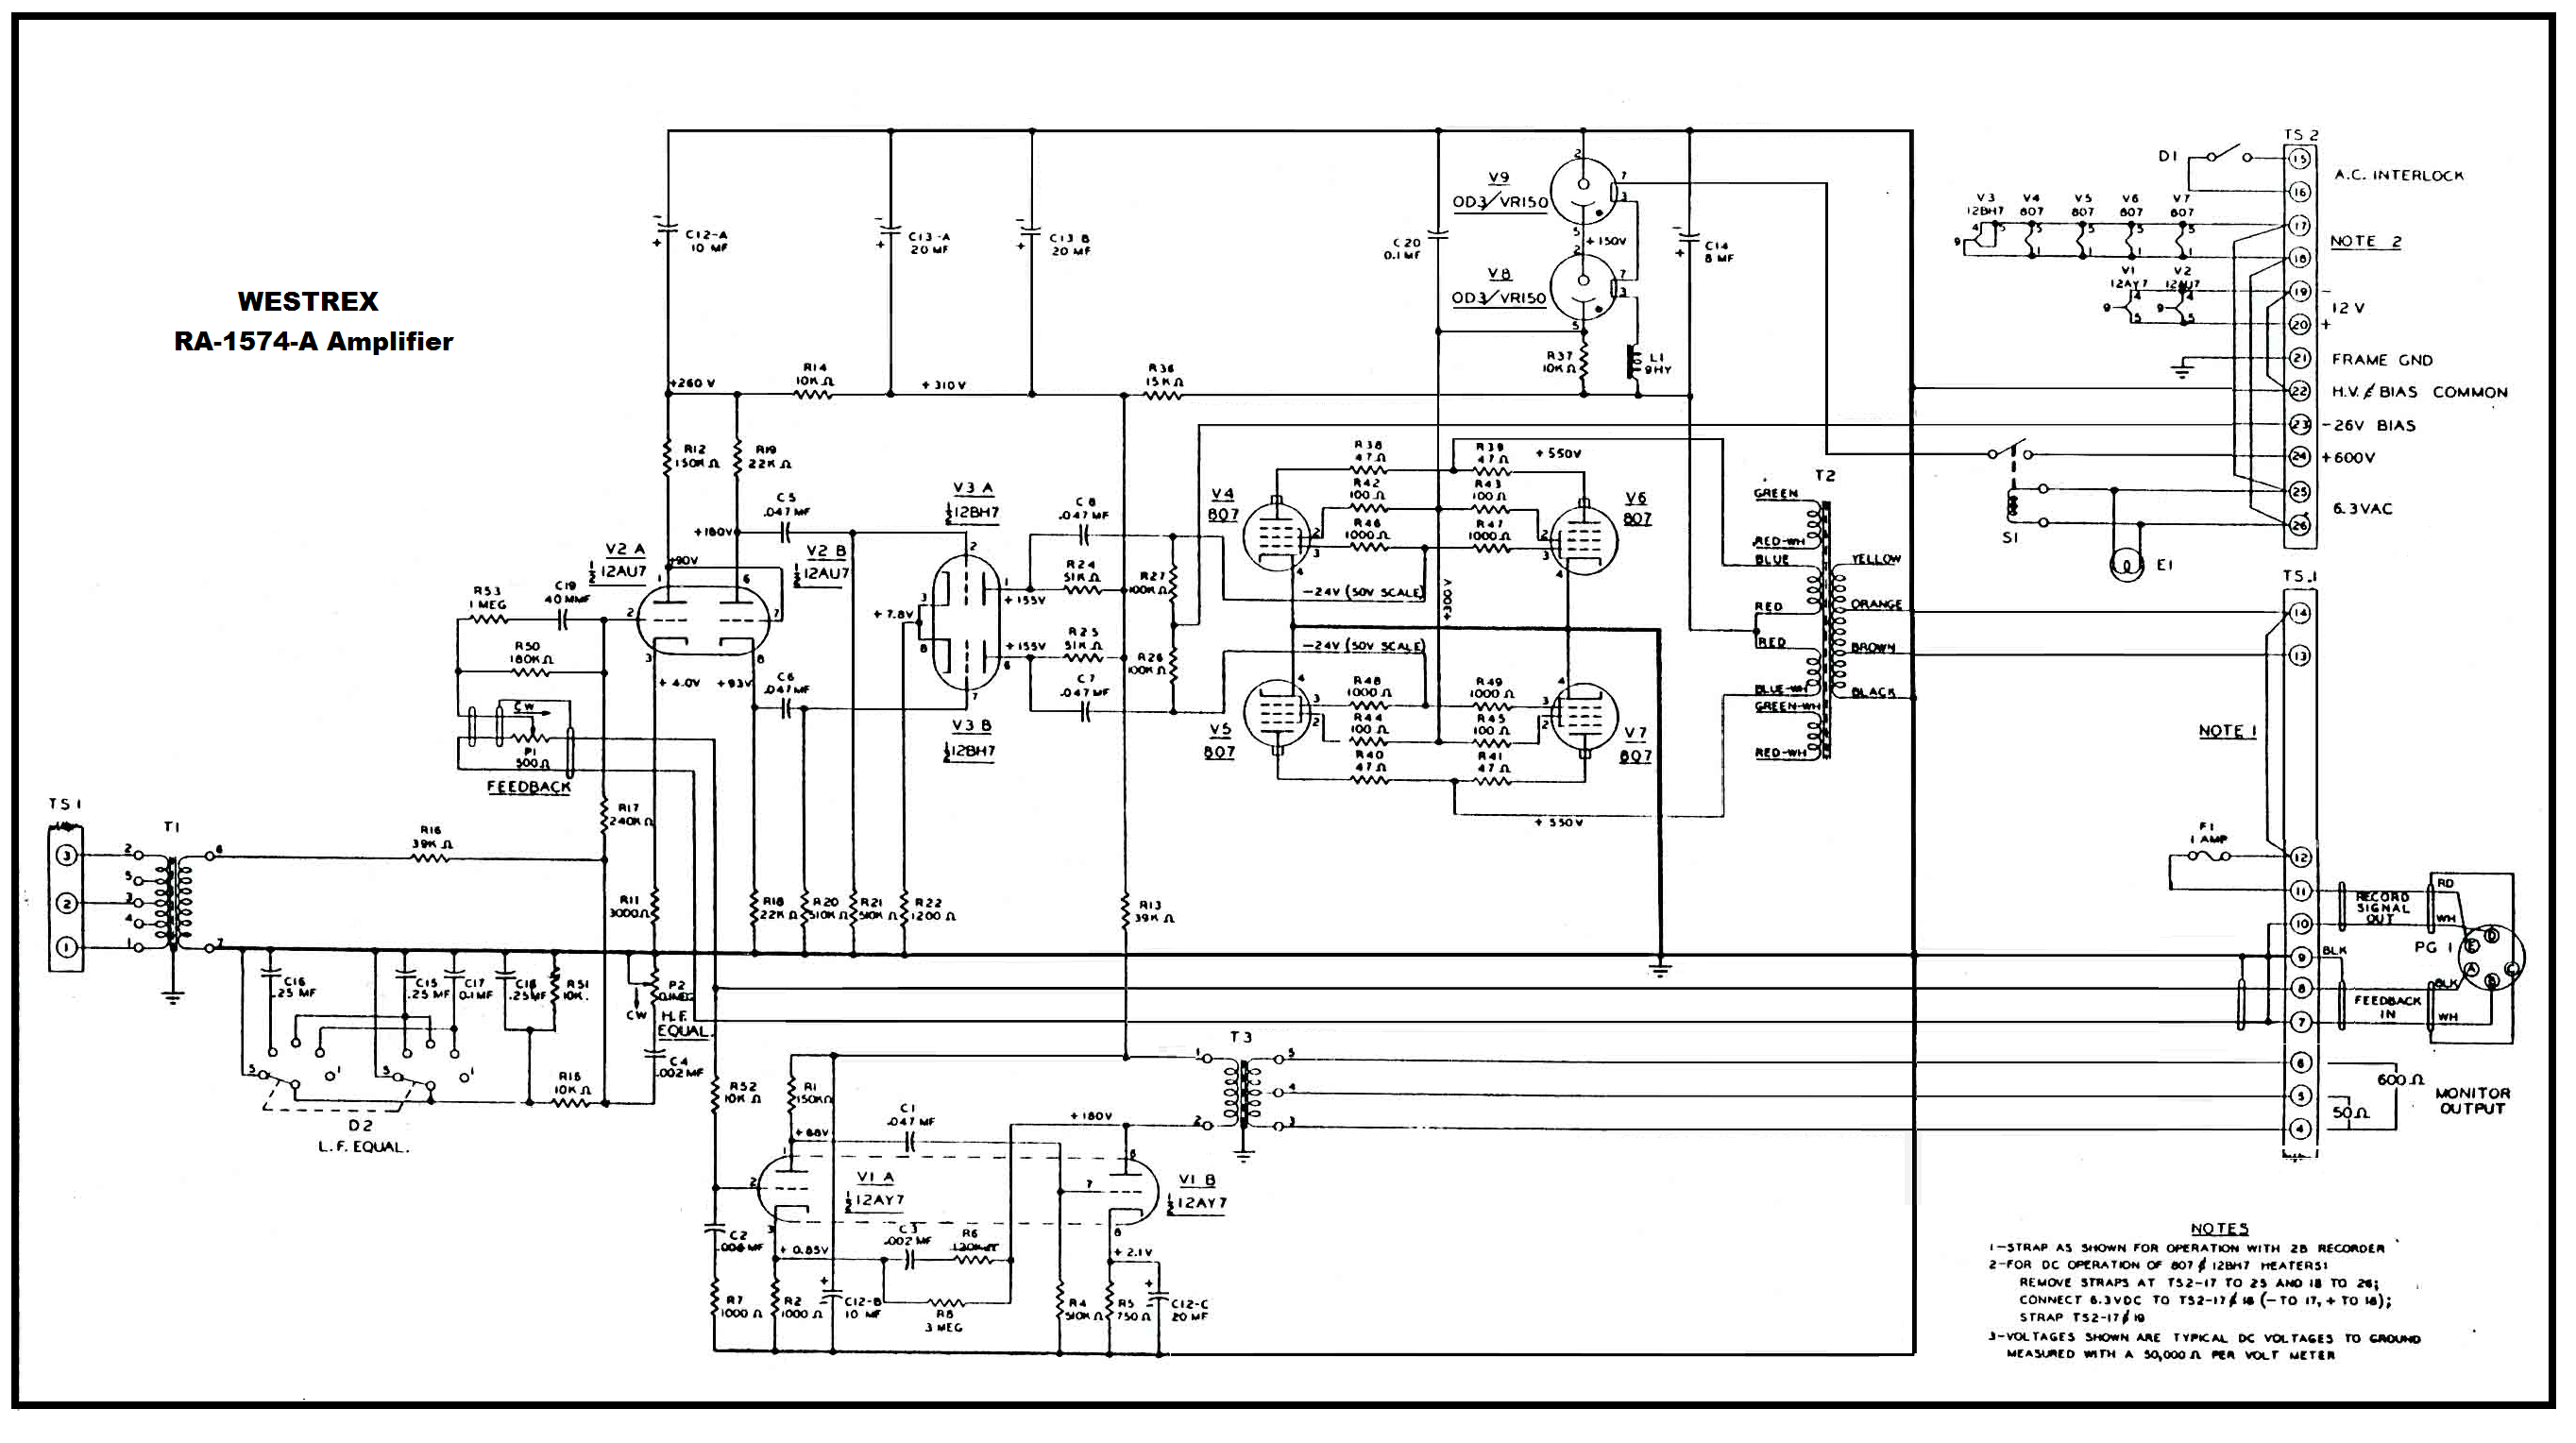 Vbq Ml G Westrex Ra A Ppp Cutting Amp Ed on Push Pull Kt88 Tube Amplifier Schematic